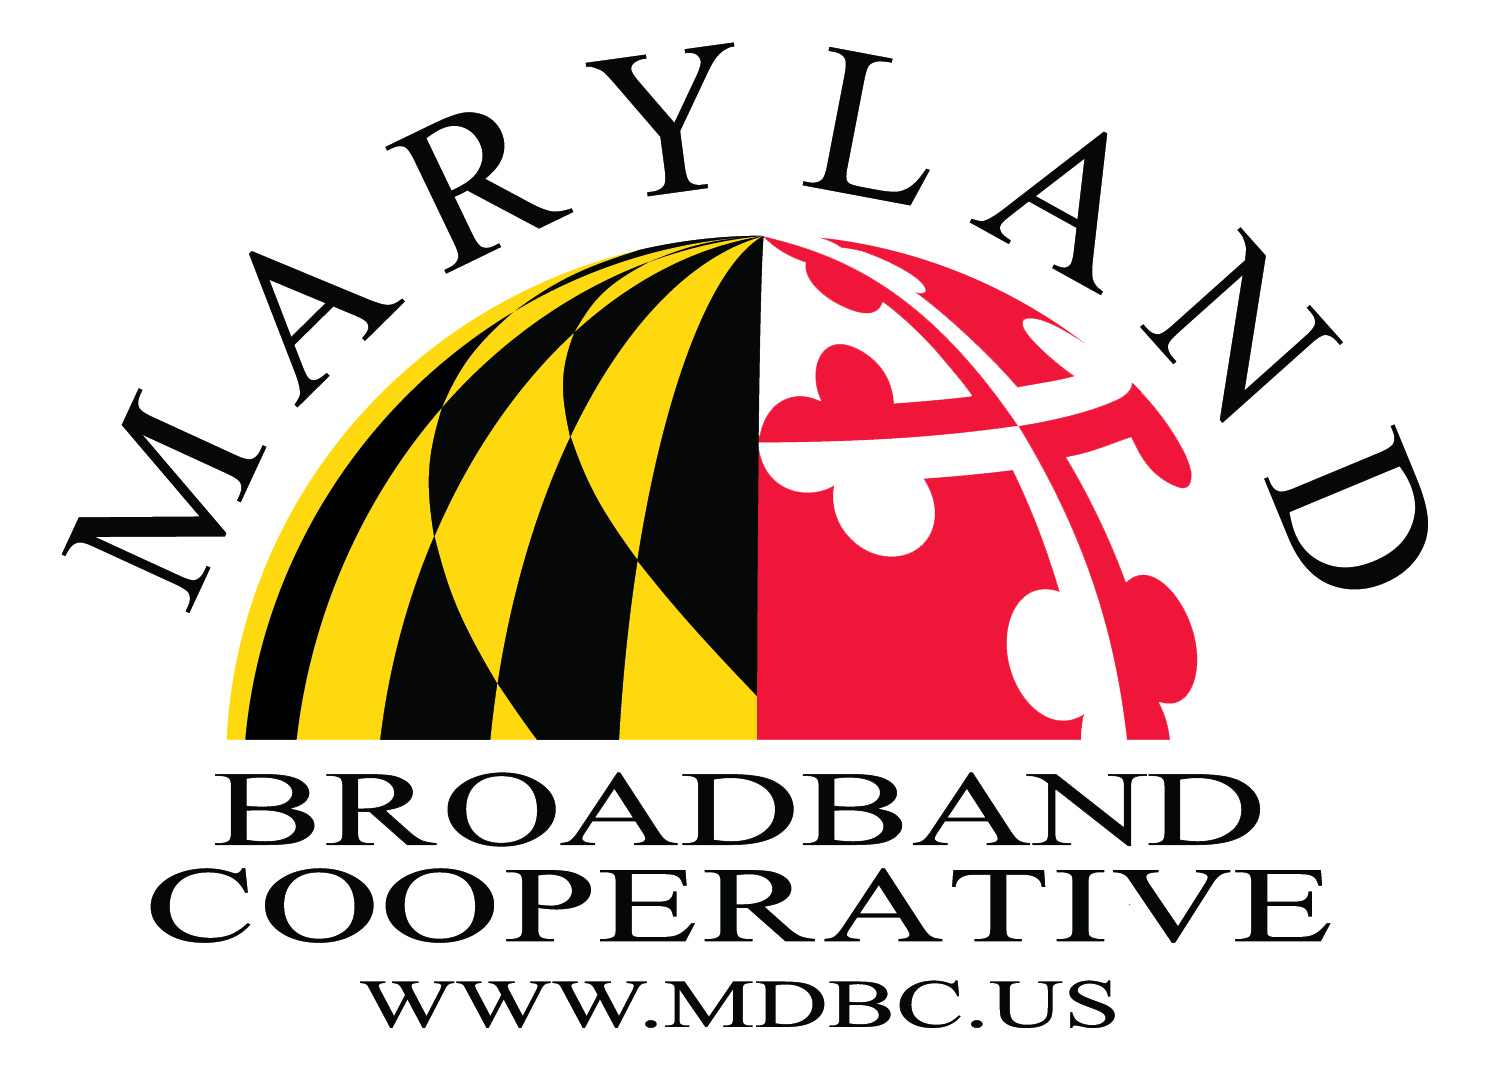 MD Broadband Cooperative